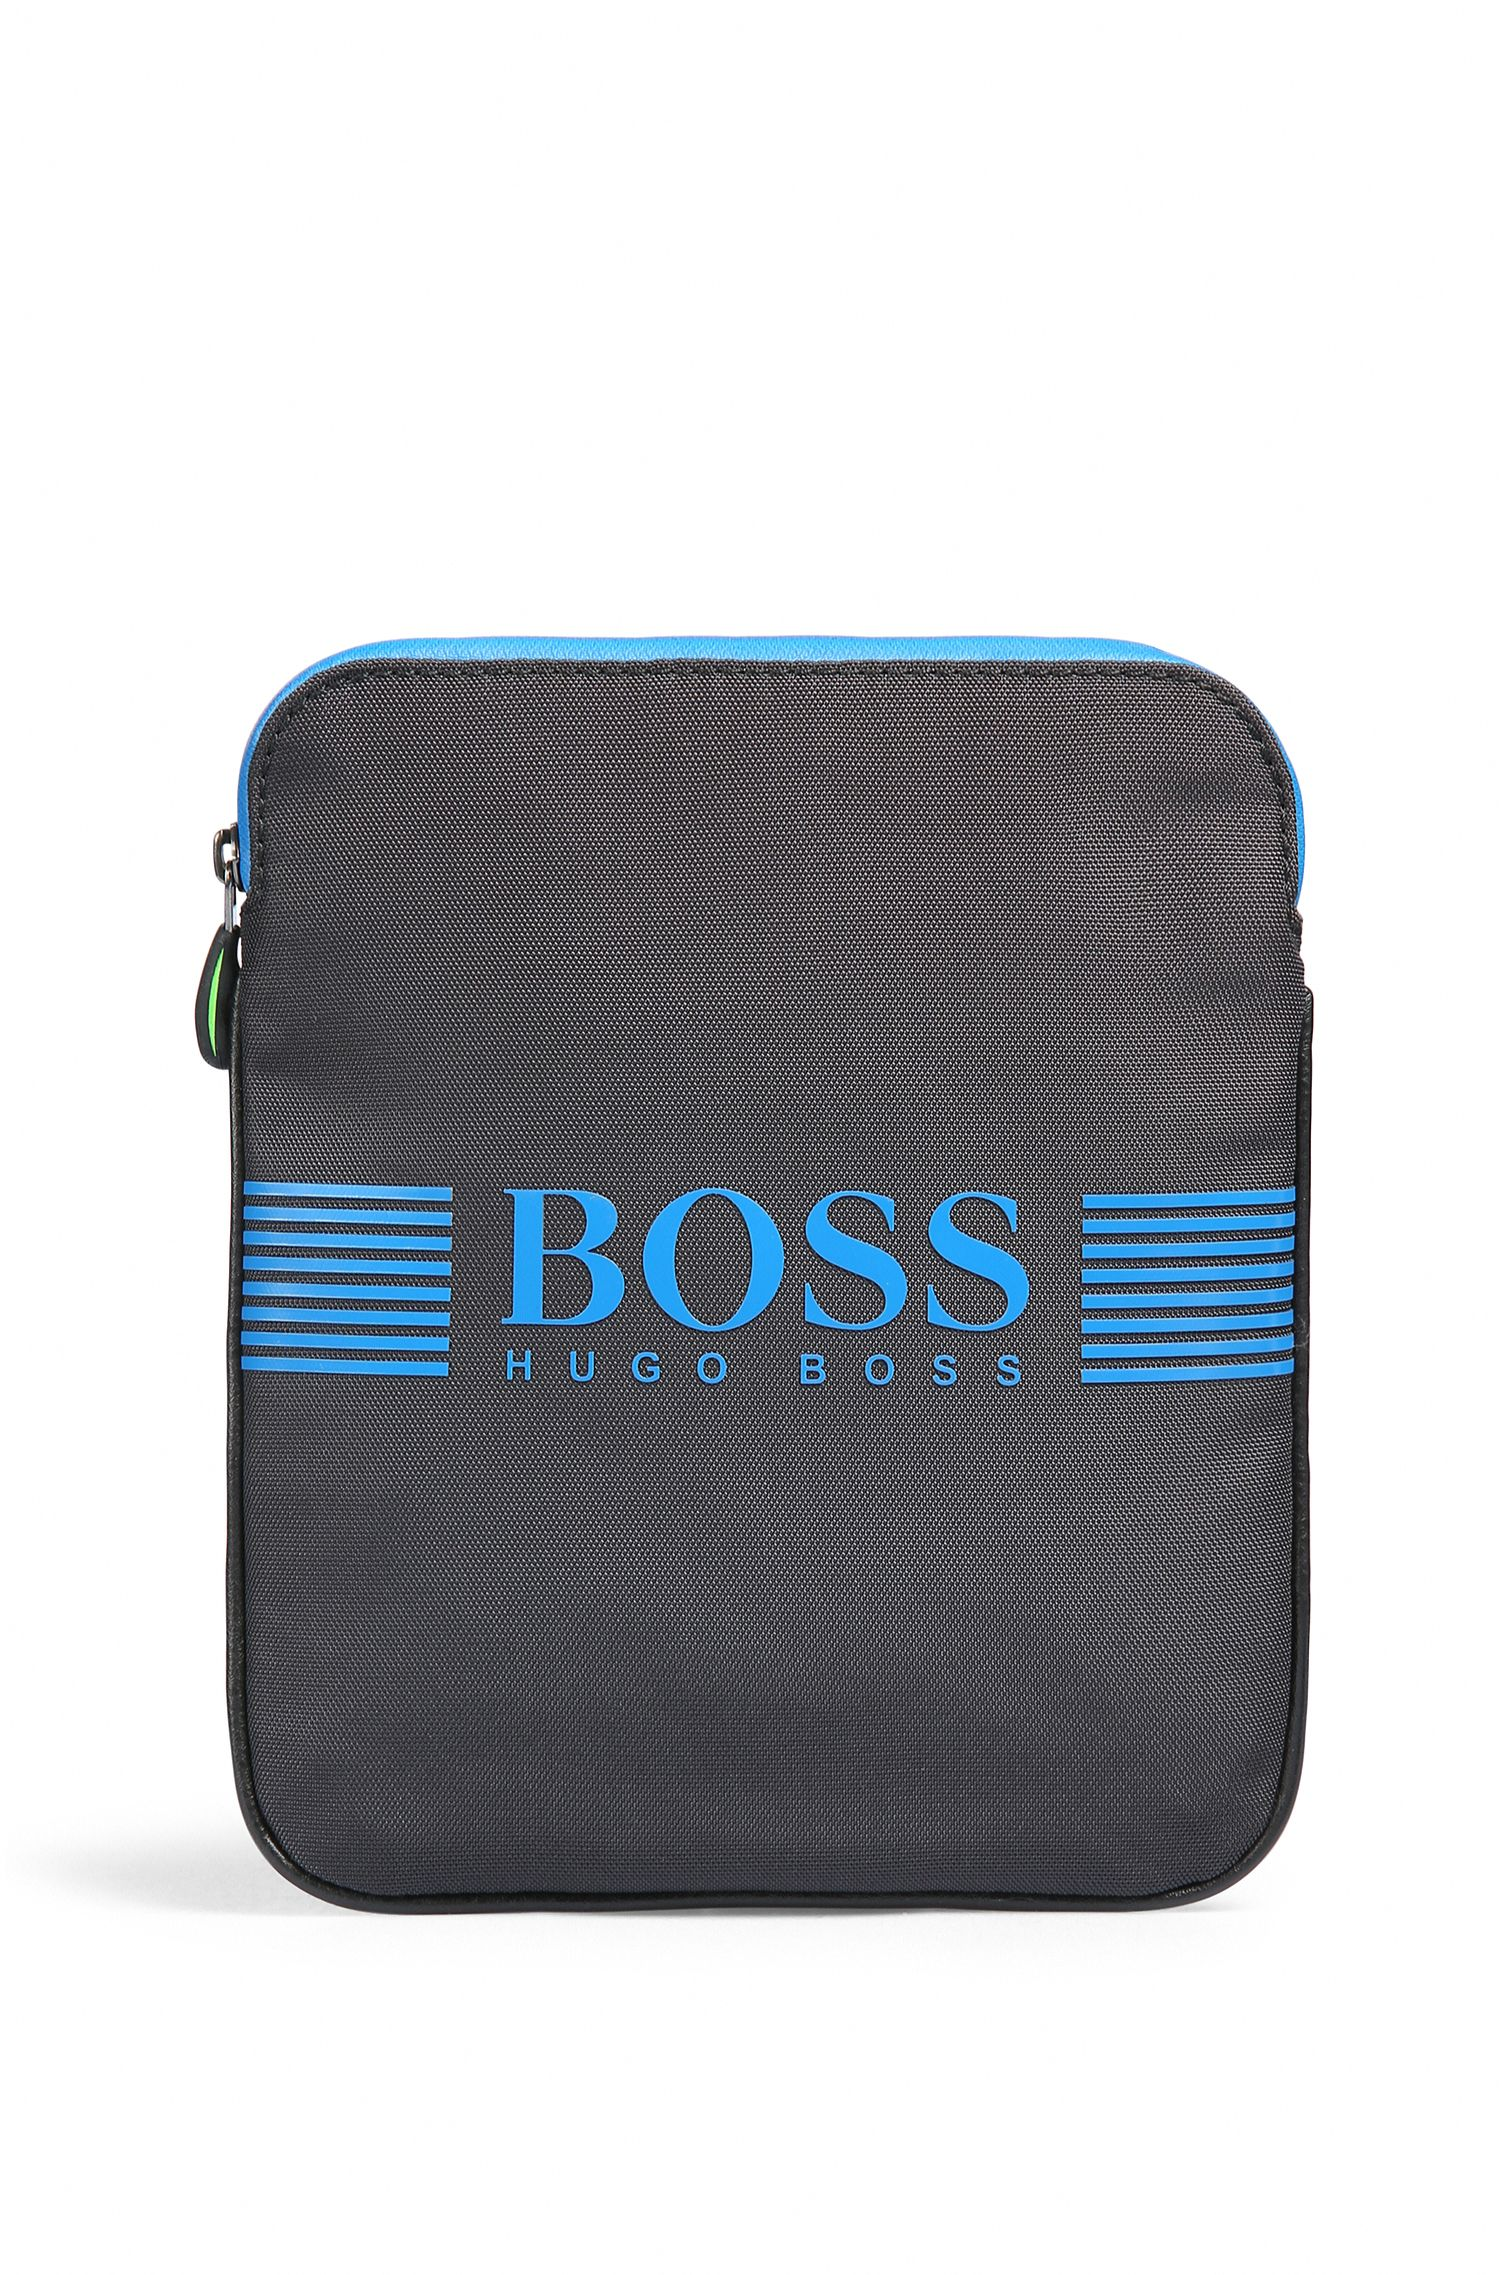 Cross-body bag in technical fabric